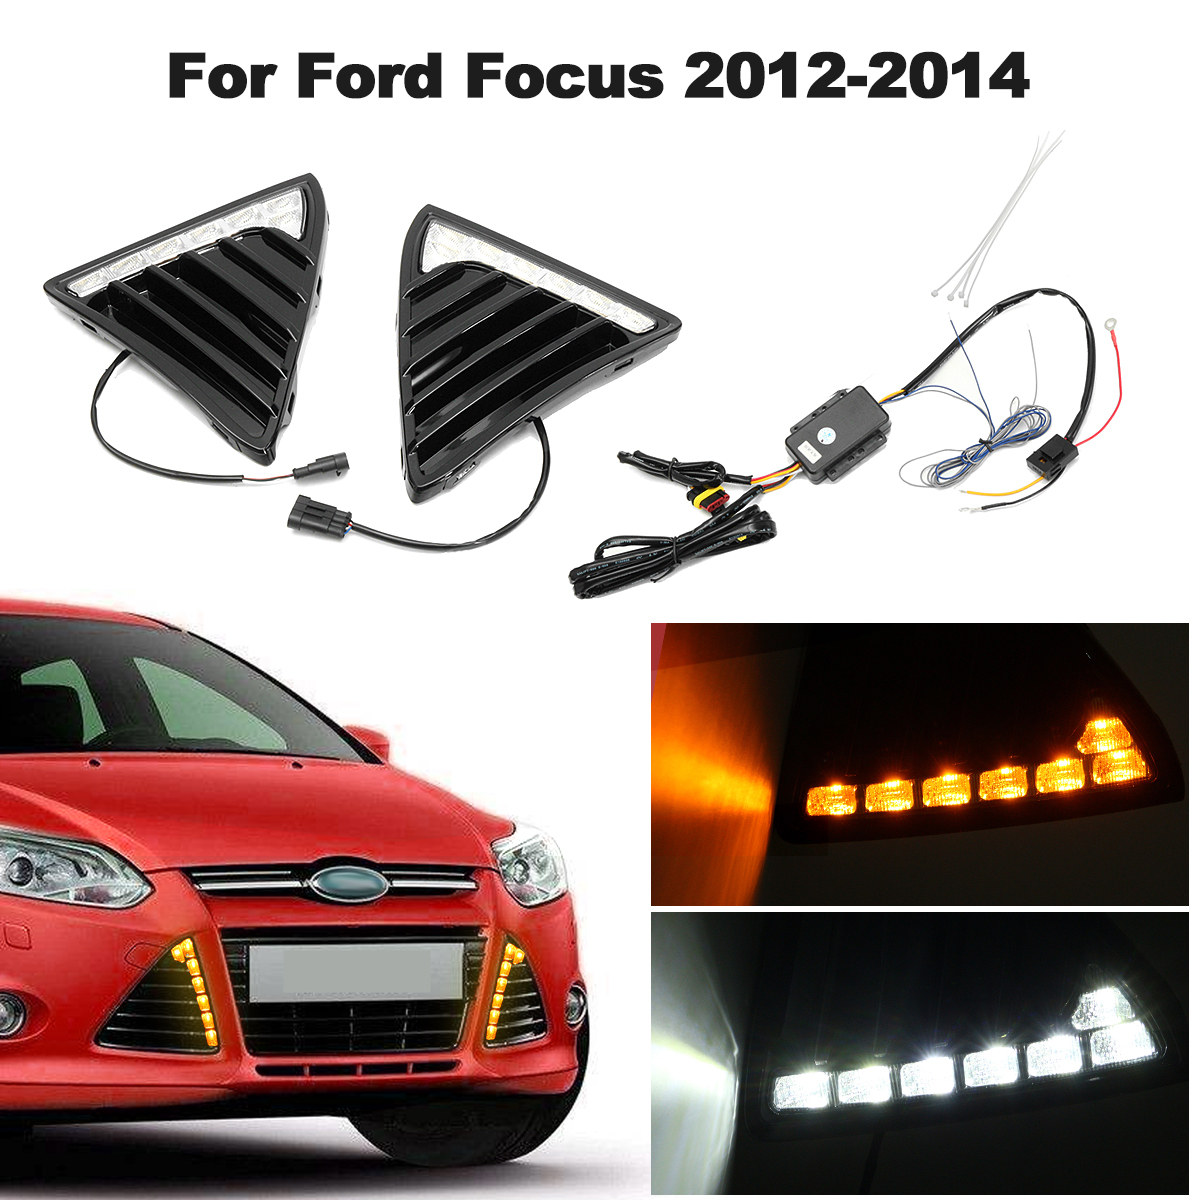 For Ford for Focus 2011 2012 2013 2014 Pair 12V Car LED Daytime Running Light Fog Lamp DRL Waterproof White Light New new dimming style relay waterproof 12v led car light drl daytime running lights with fog lamp hole for mitsubishi asx 2013 2014